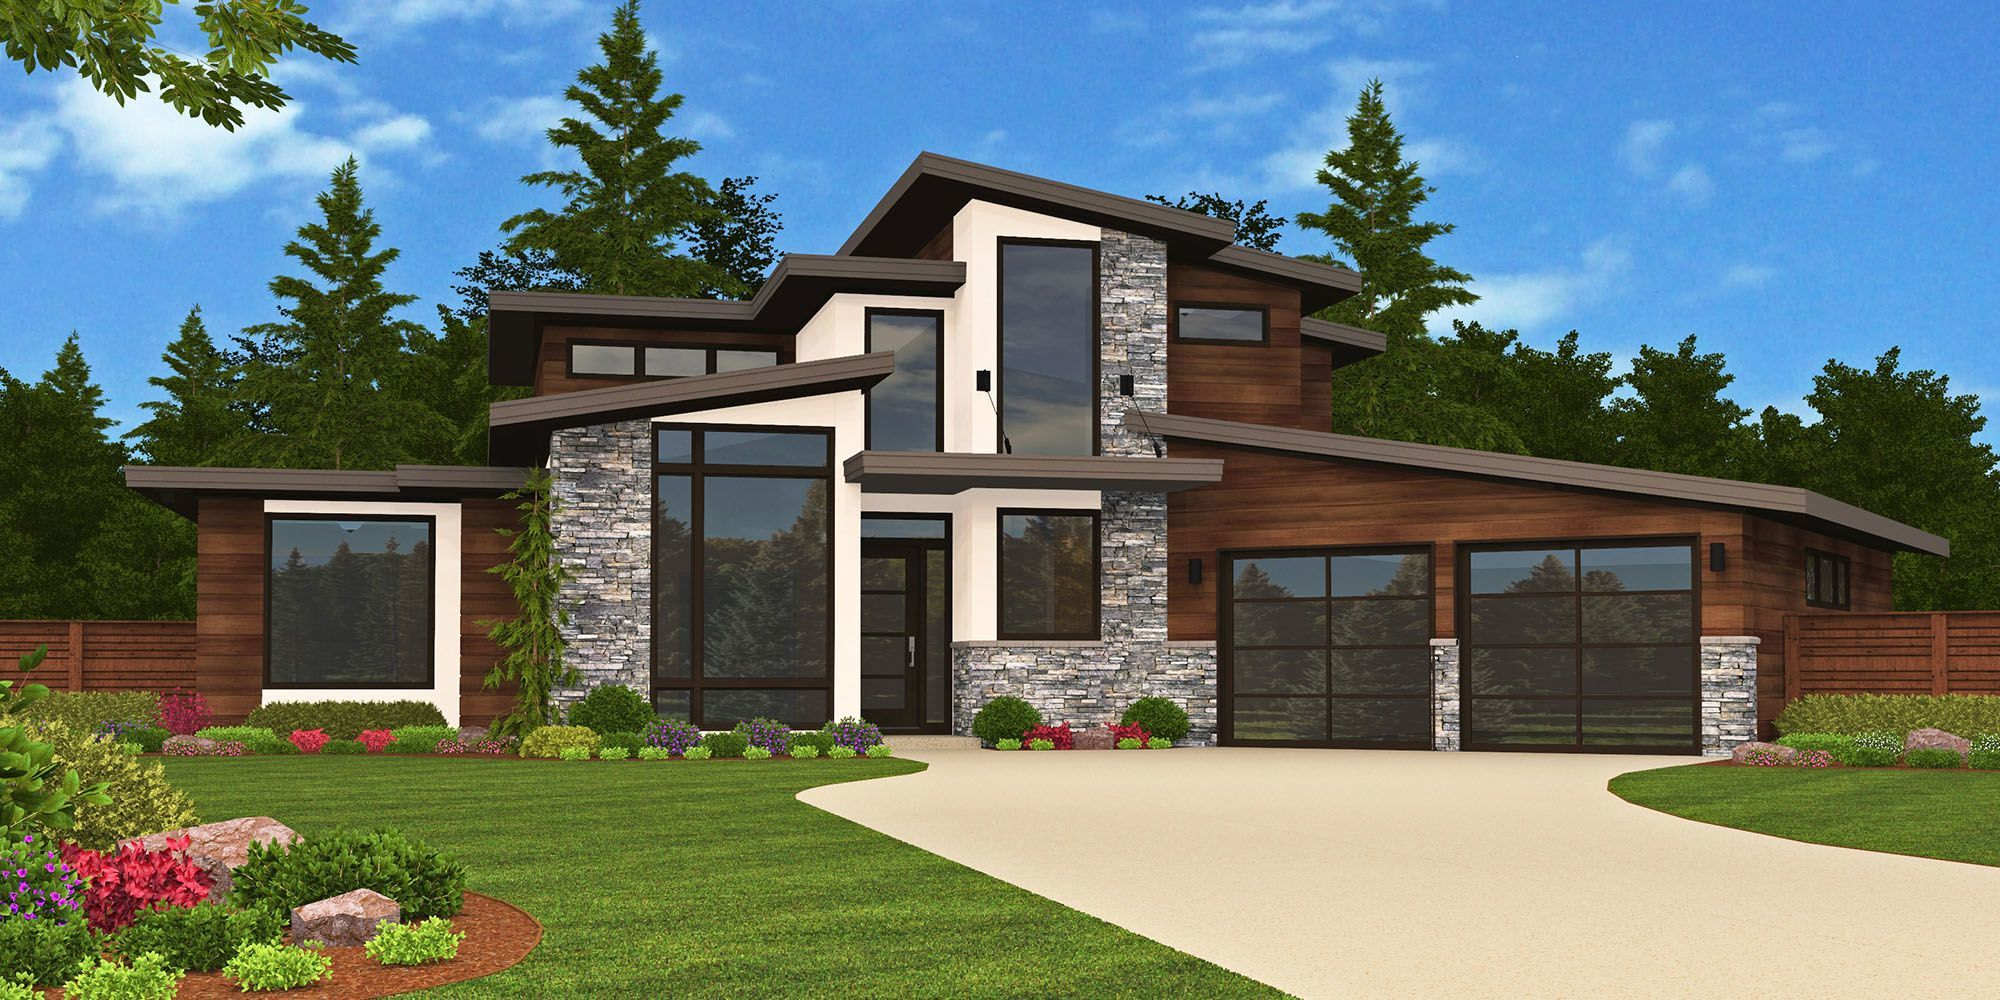 Sting x 16a house plan modern house plans for Home plans pictures